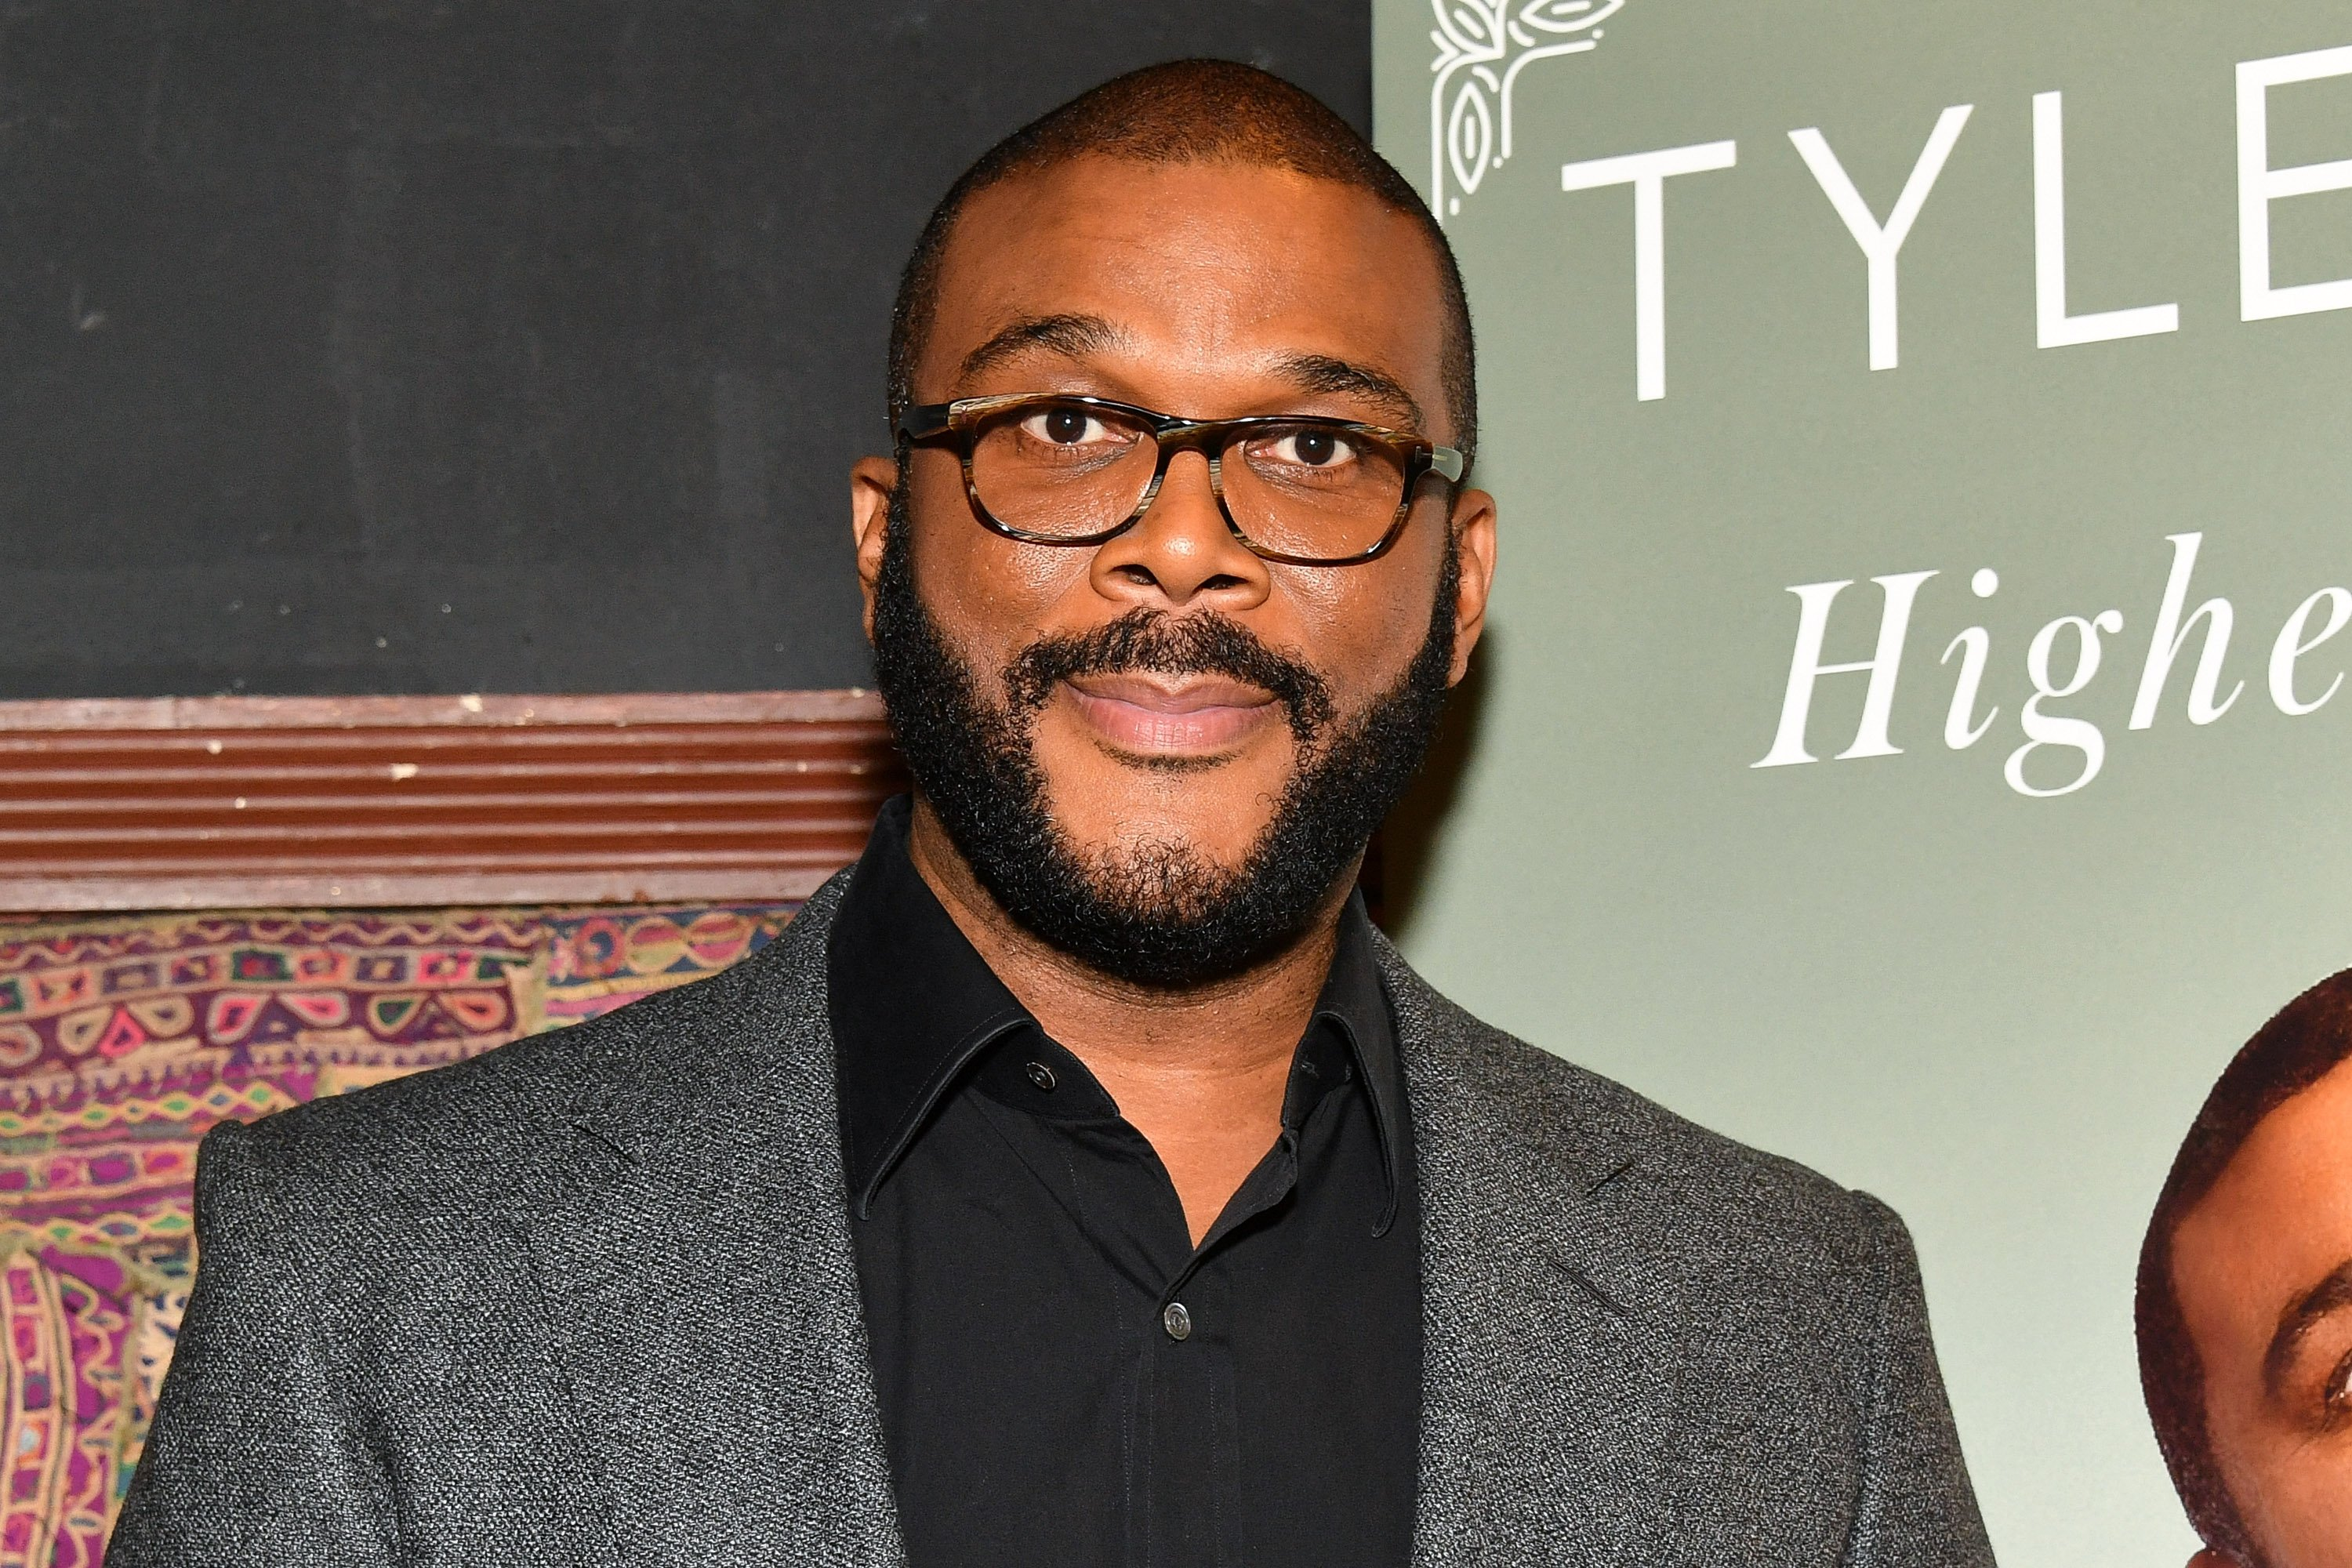 """Tyler Perry launches his new book """"Higher Is Waiting"""" at the Gramercy Theatre on November 14, 2017.   Photo: Getty Images"""